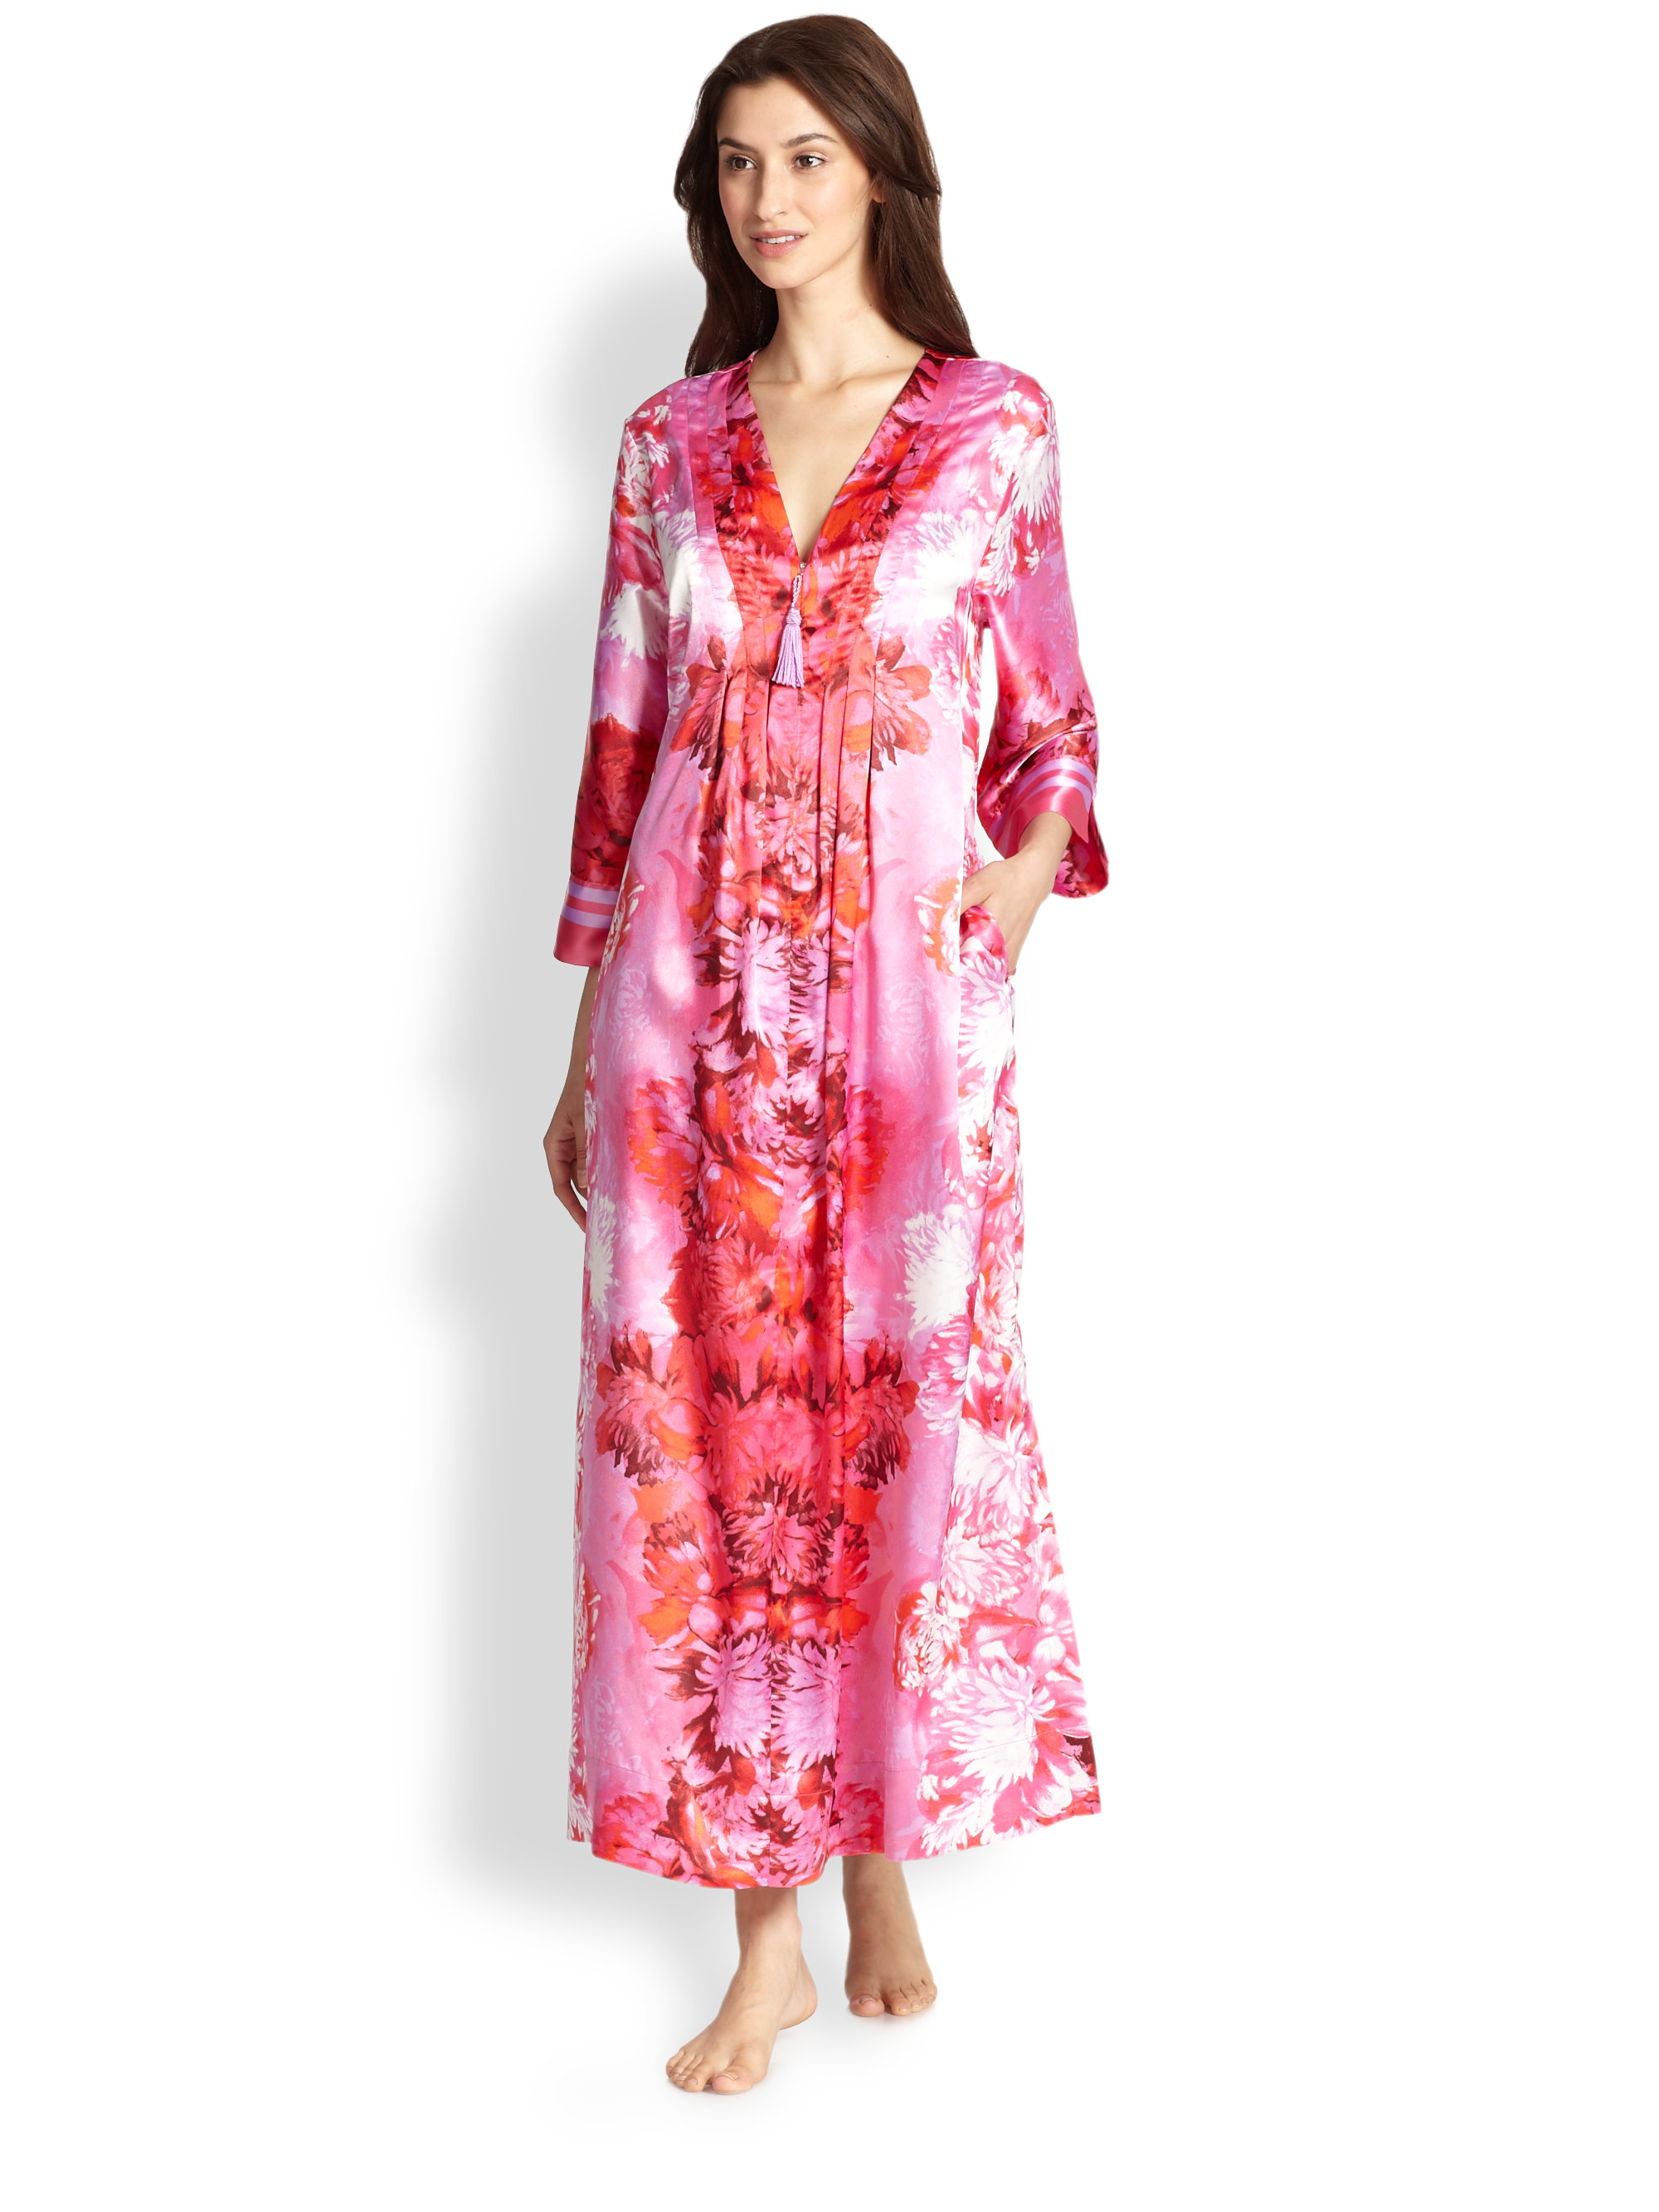 Oscar de la renta peonyprinted satin caftan in pink pink for Caftan avec satin de chaise